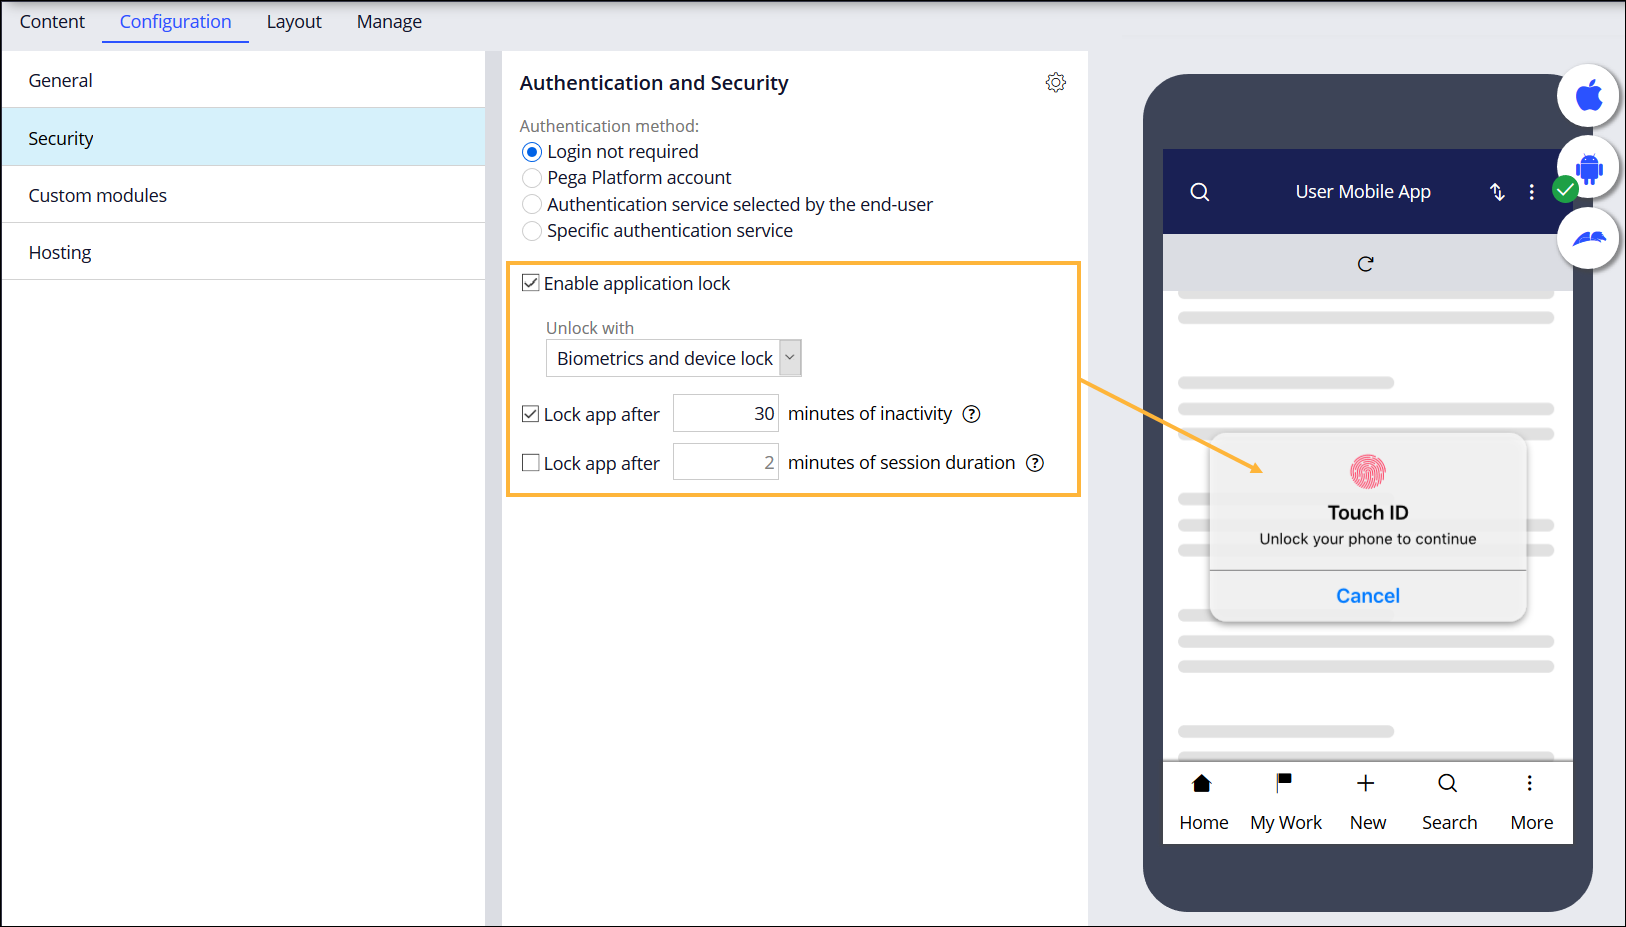 Authentication and locking settings